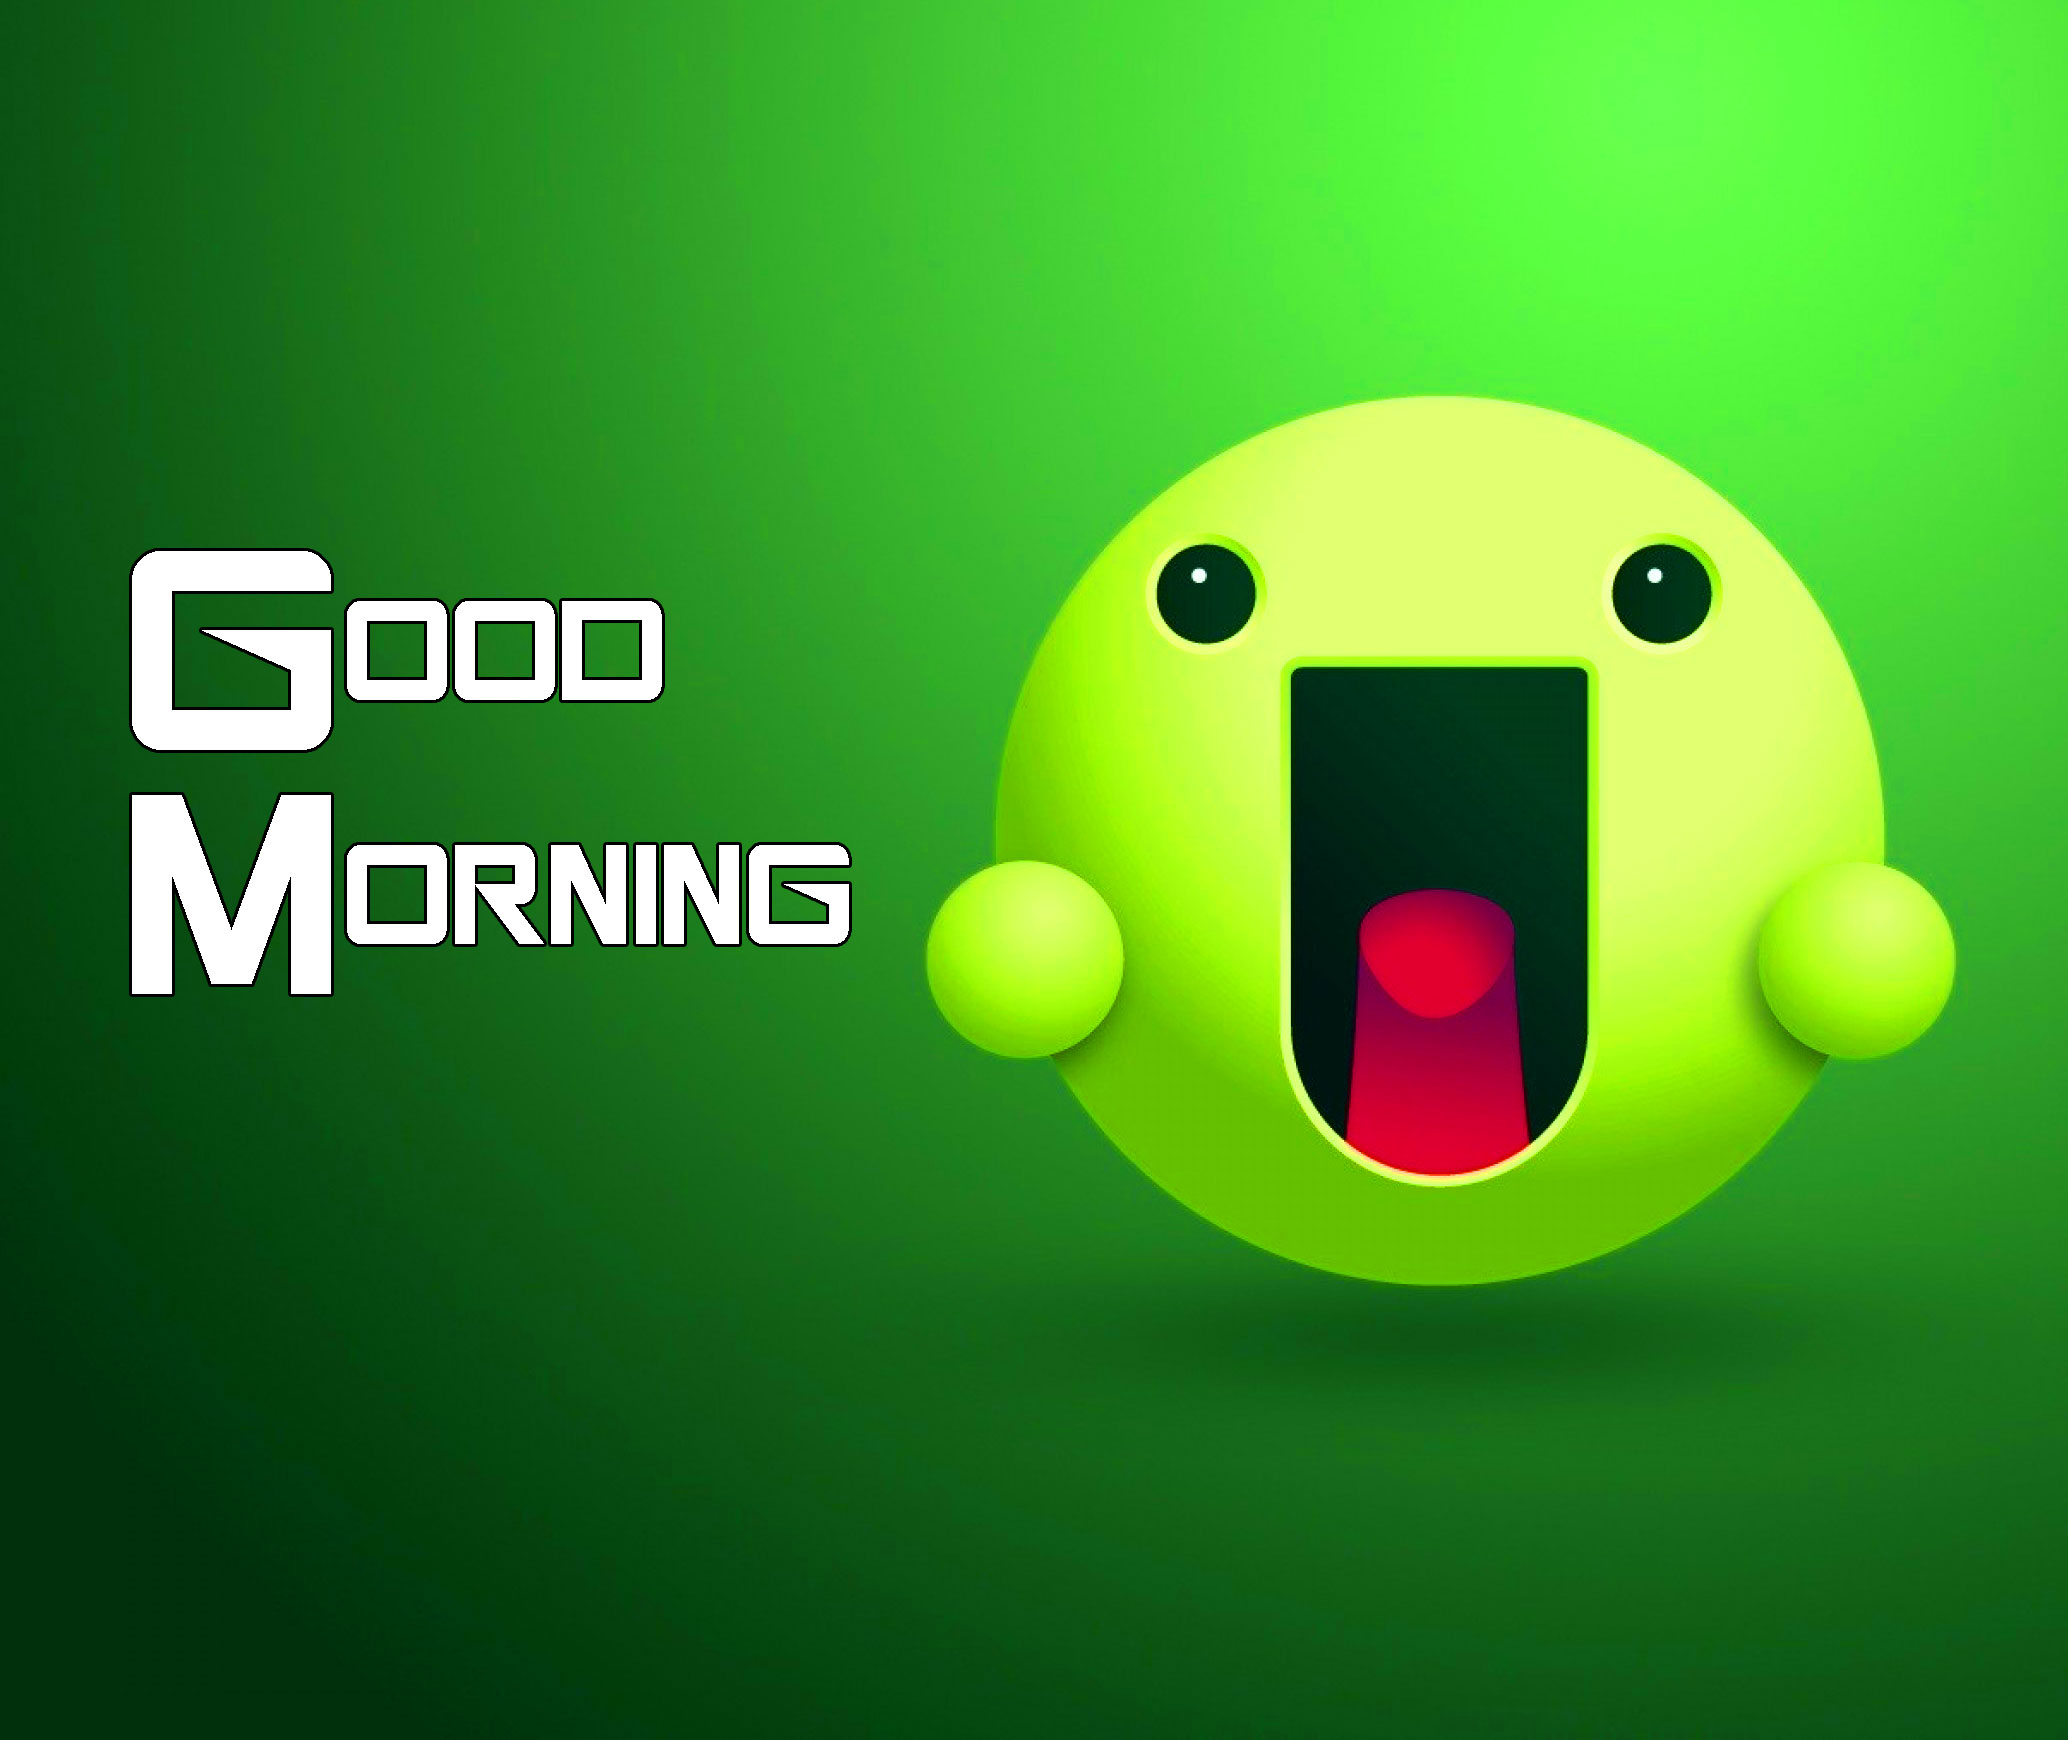 Funny Good Morning Images pics photo hd download